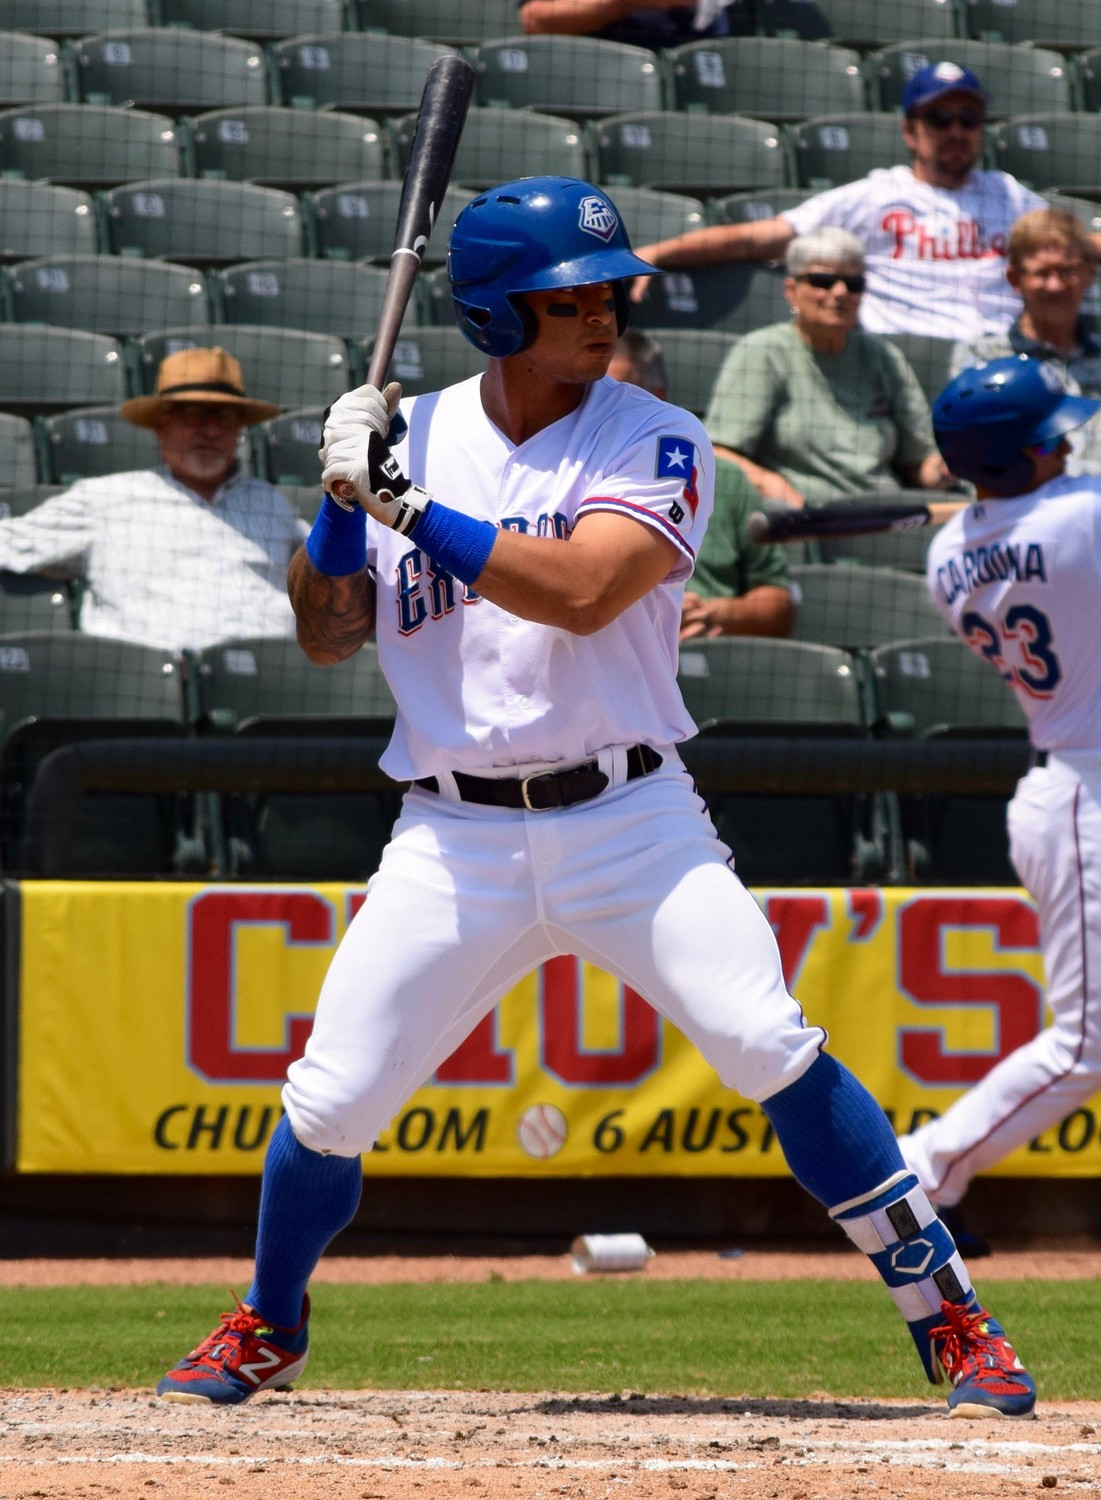 Express infielder Christian Lopes was named the PCL Player of the Week, combining to hit 12-20 with three doubles, a triple, three home runs, nine RBI and nine runs scored in that span.